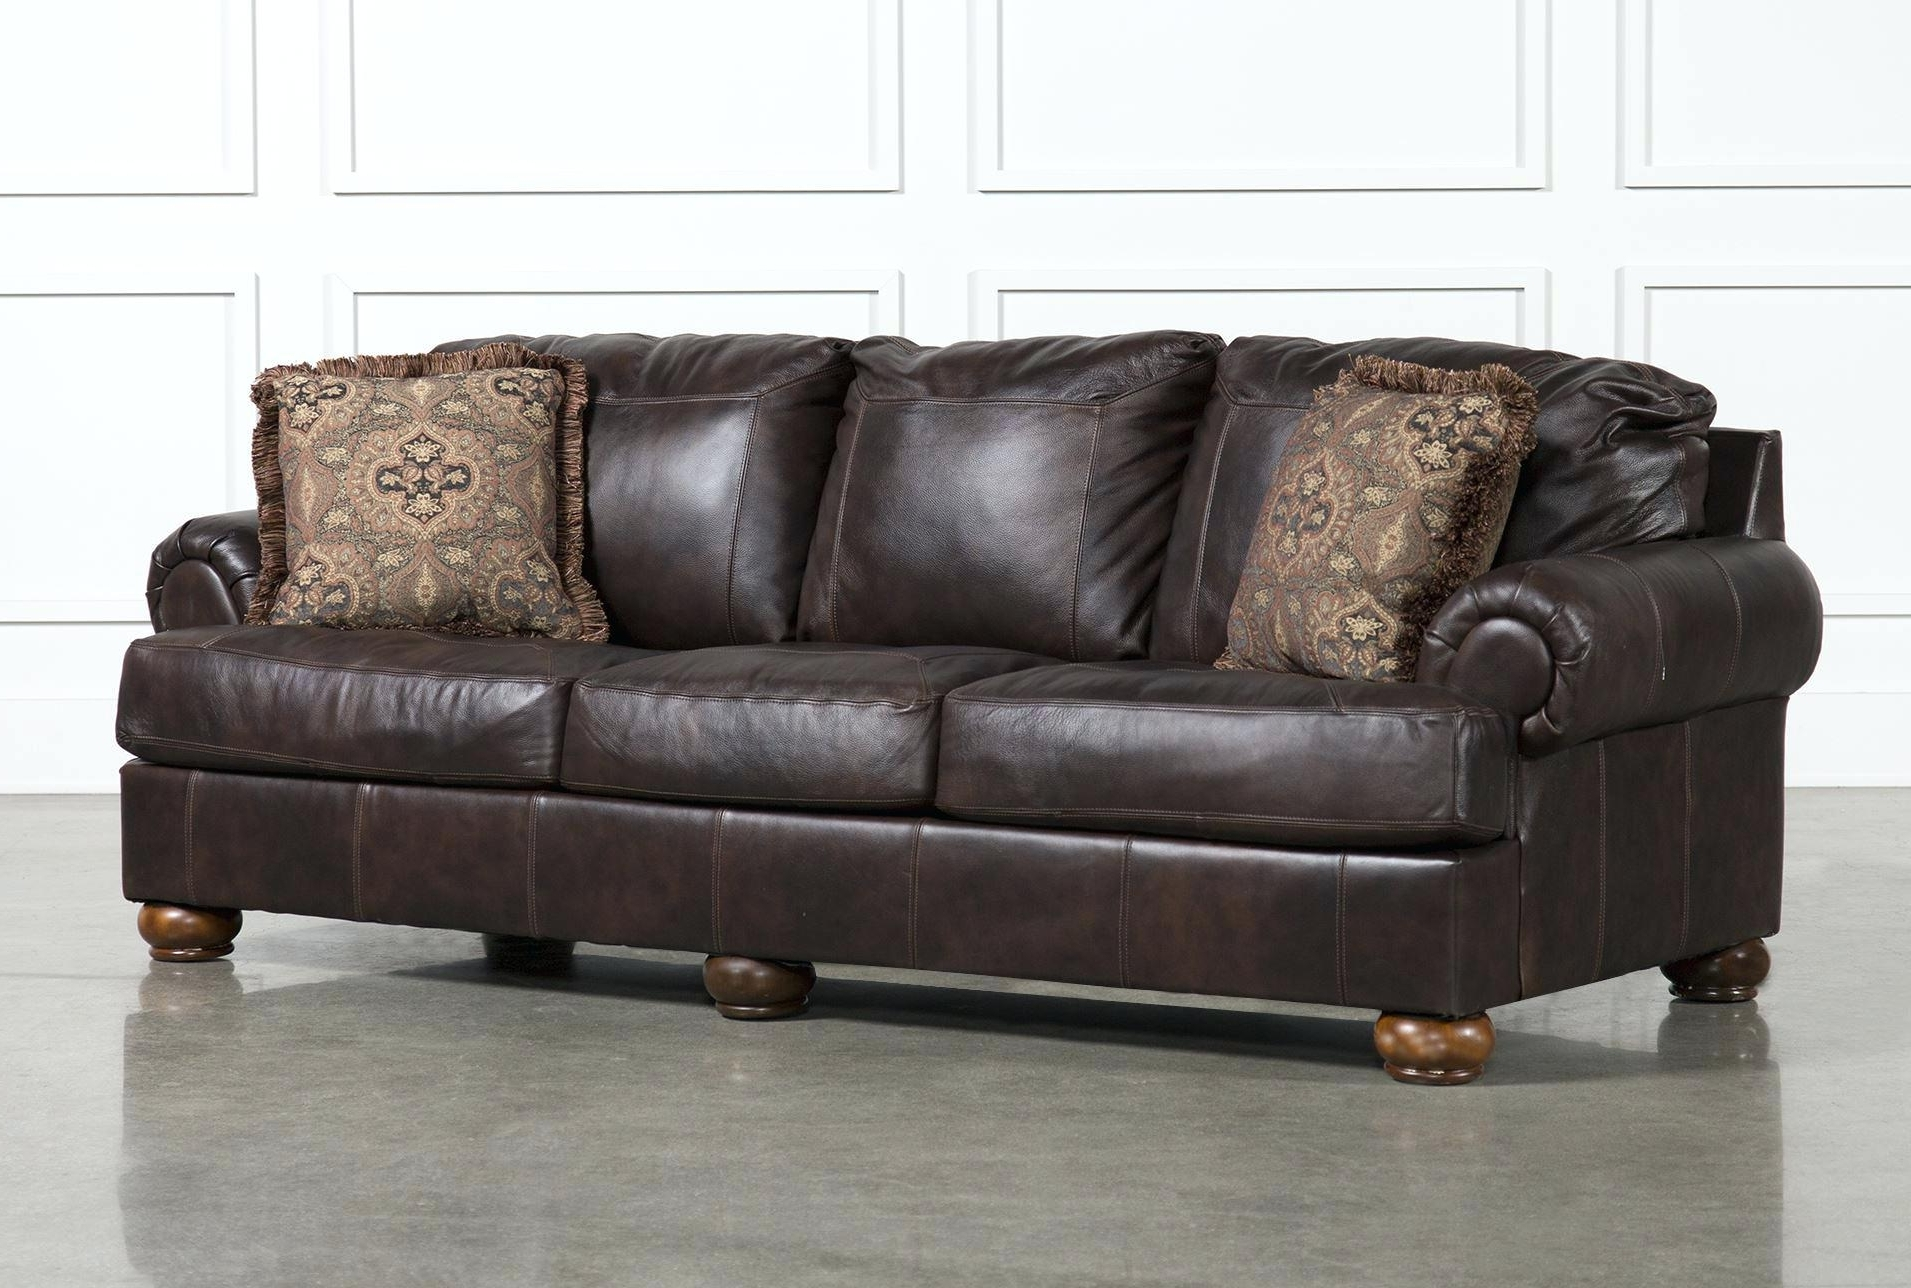 Widely Used Vancouver Bc Sectional Sofas For Leather Sectionals For Sale Sectional Sofas Canada Sofa Toronto (View 15 of 15)